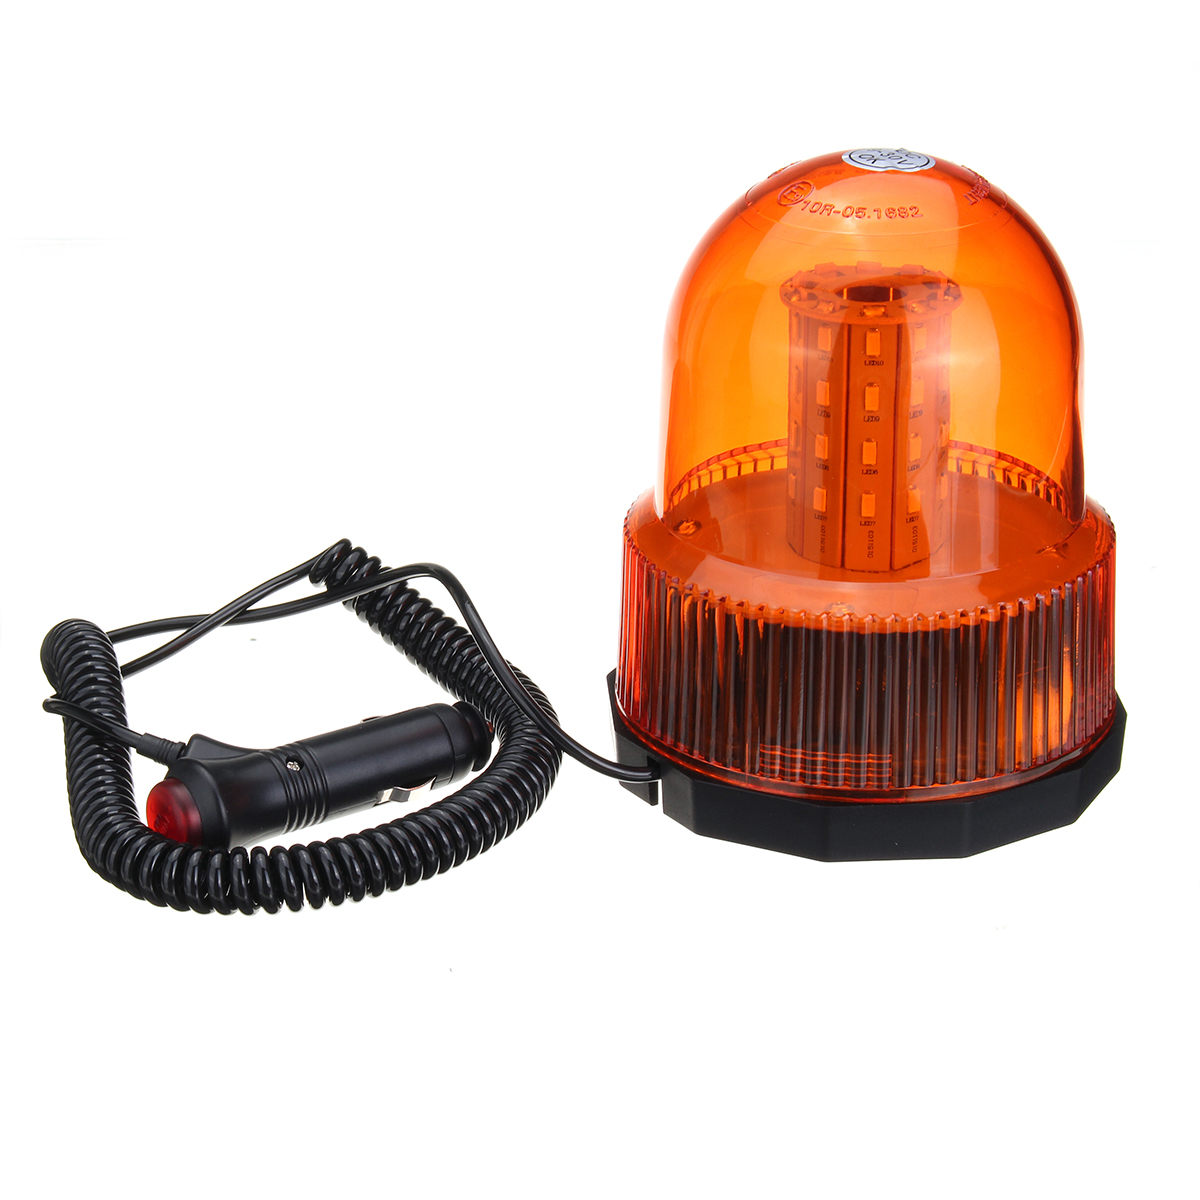 12-24V 40 LED Magnetic Mount Rotating Flashing Amber Dome Beacon Recovery Warning Light Roadway Safety Traffic Light led traffic safety warning lights car dome rotating flashing light with the magnet